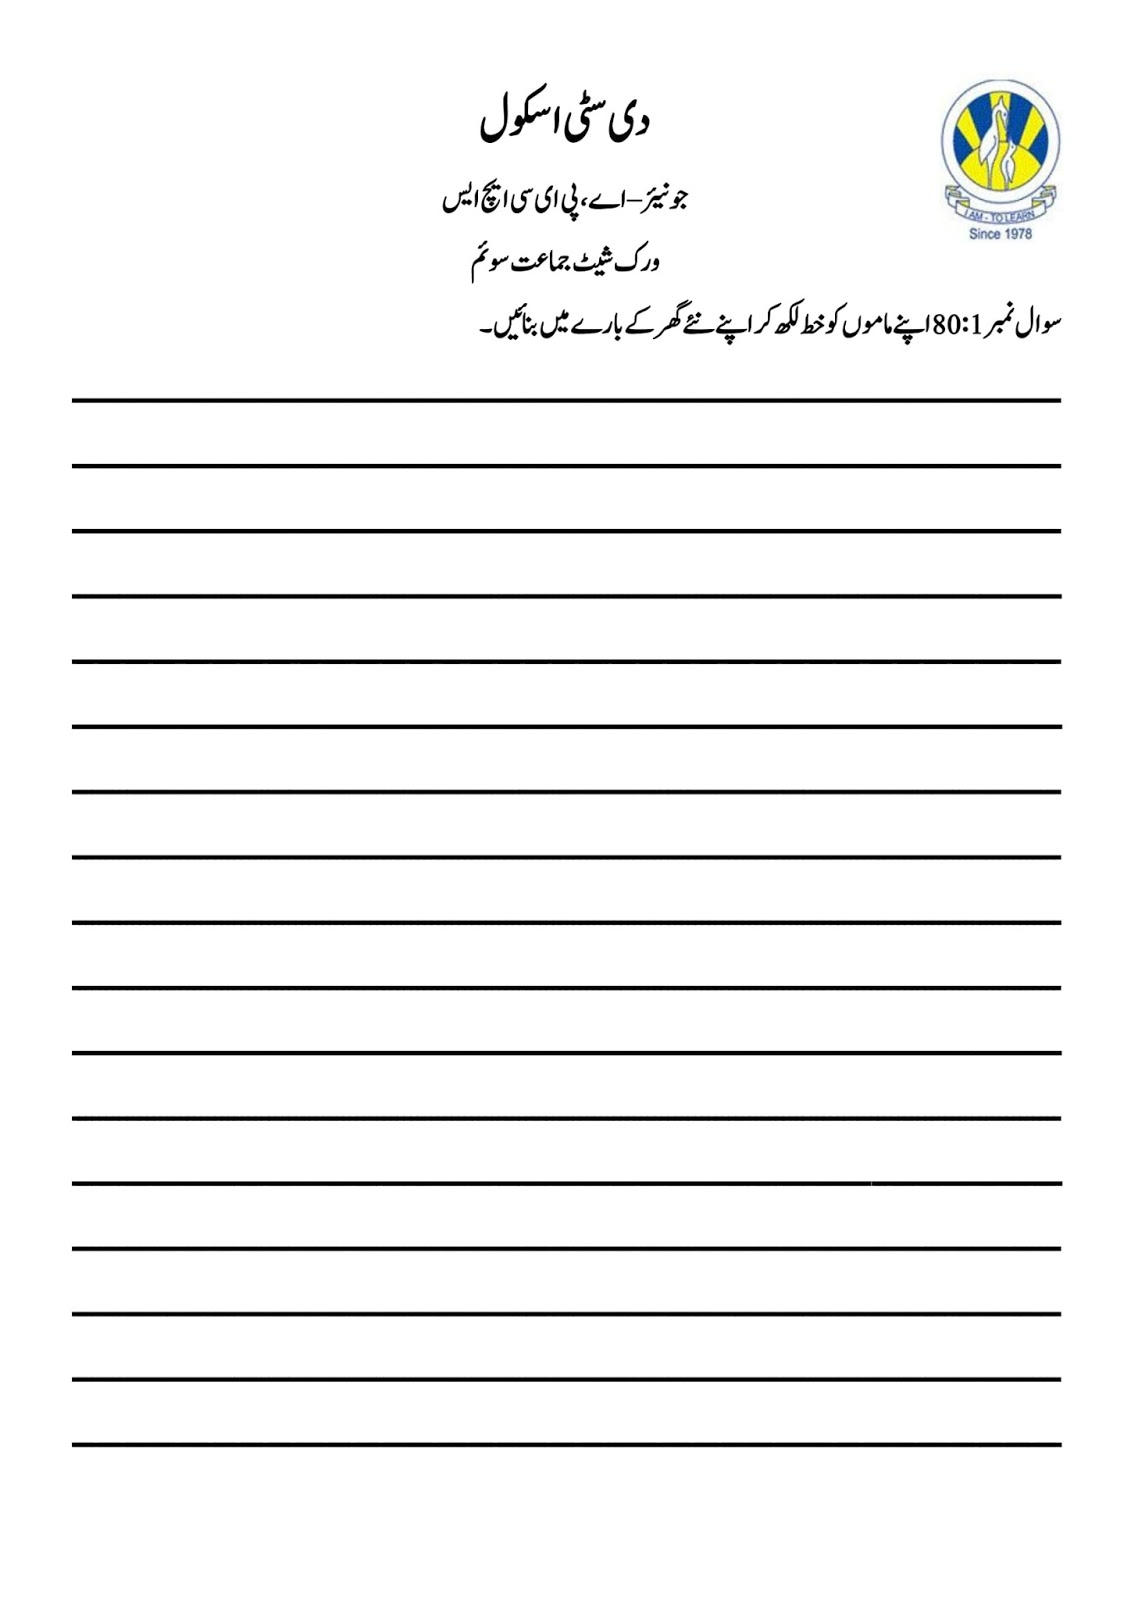 Urdu Letters Worksheets